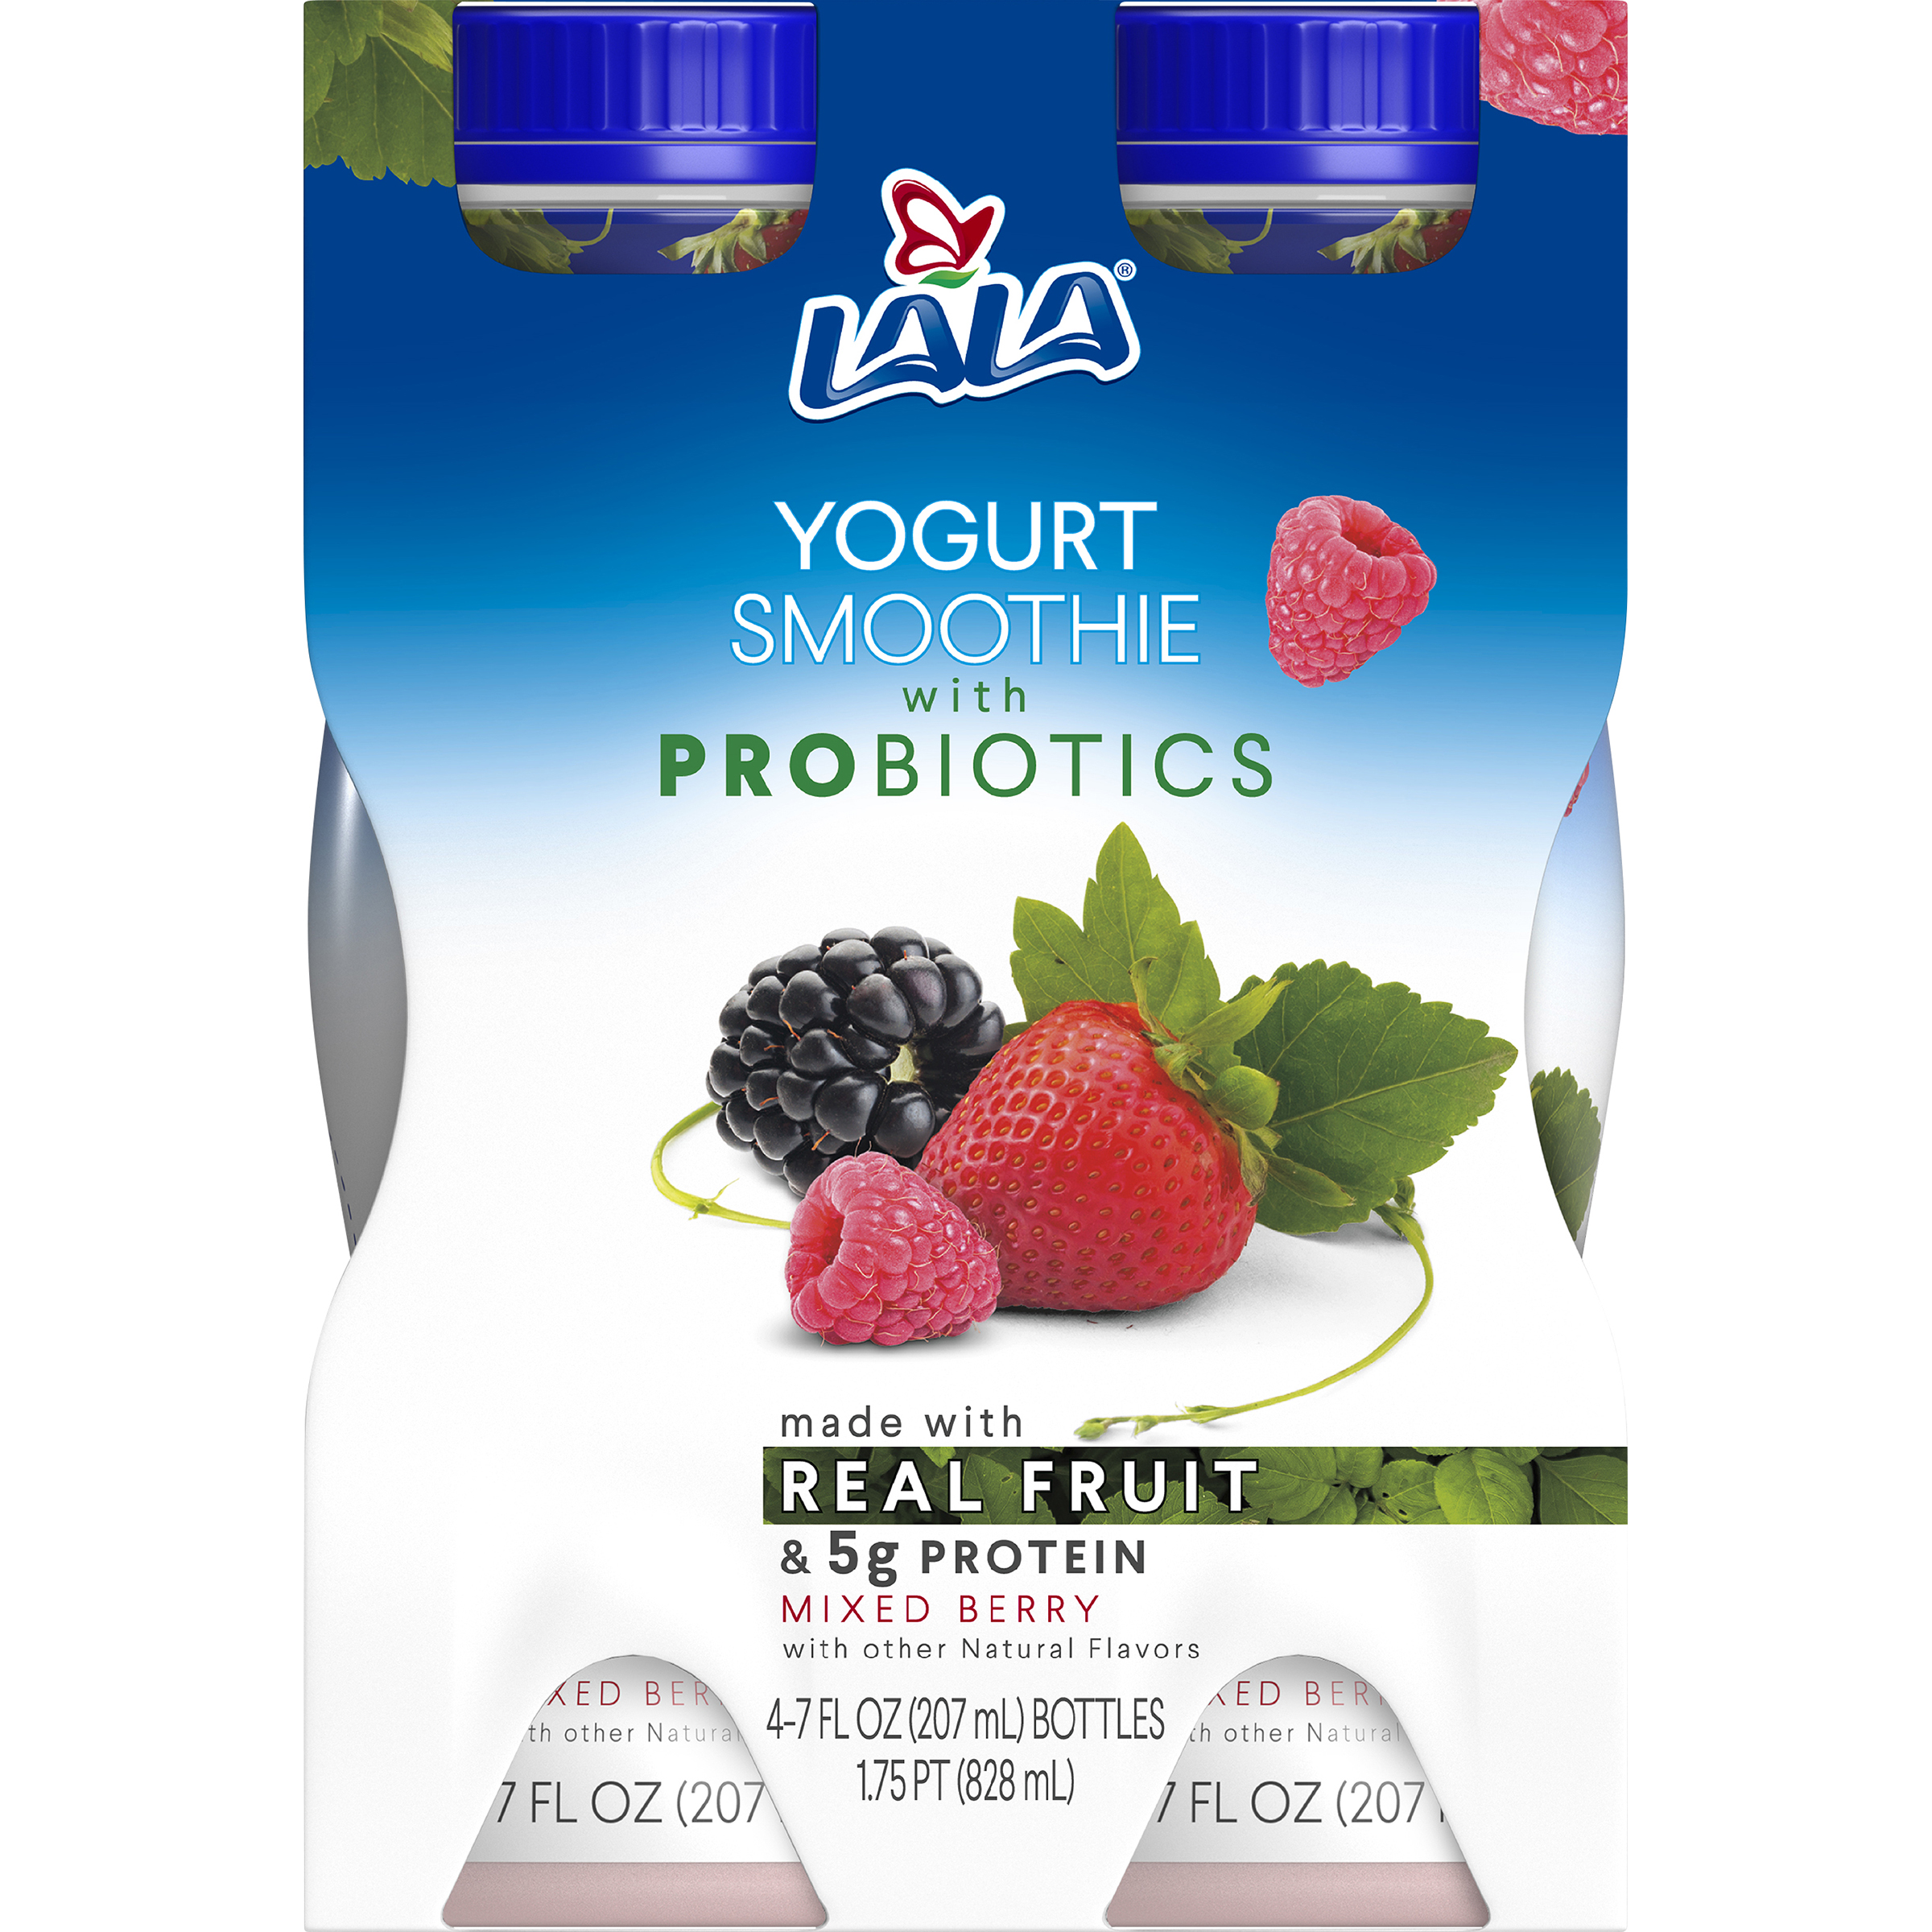 LALA Drinkable Yogurt Smoothie with Probiotics, 5g of Protein, Mixed Berry, 7-Ounce Bottles (Pack of 4)